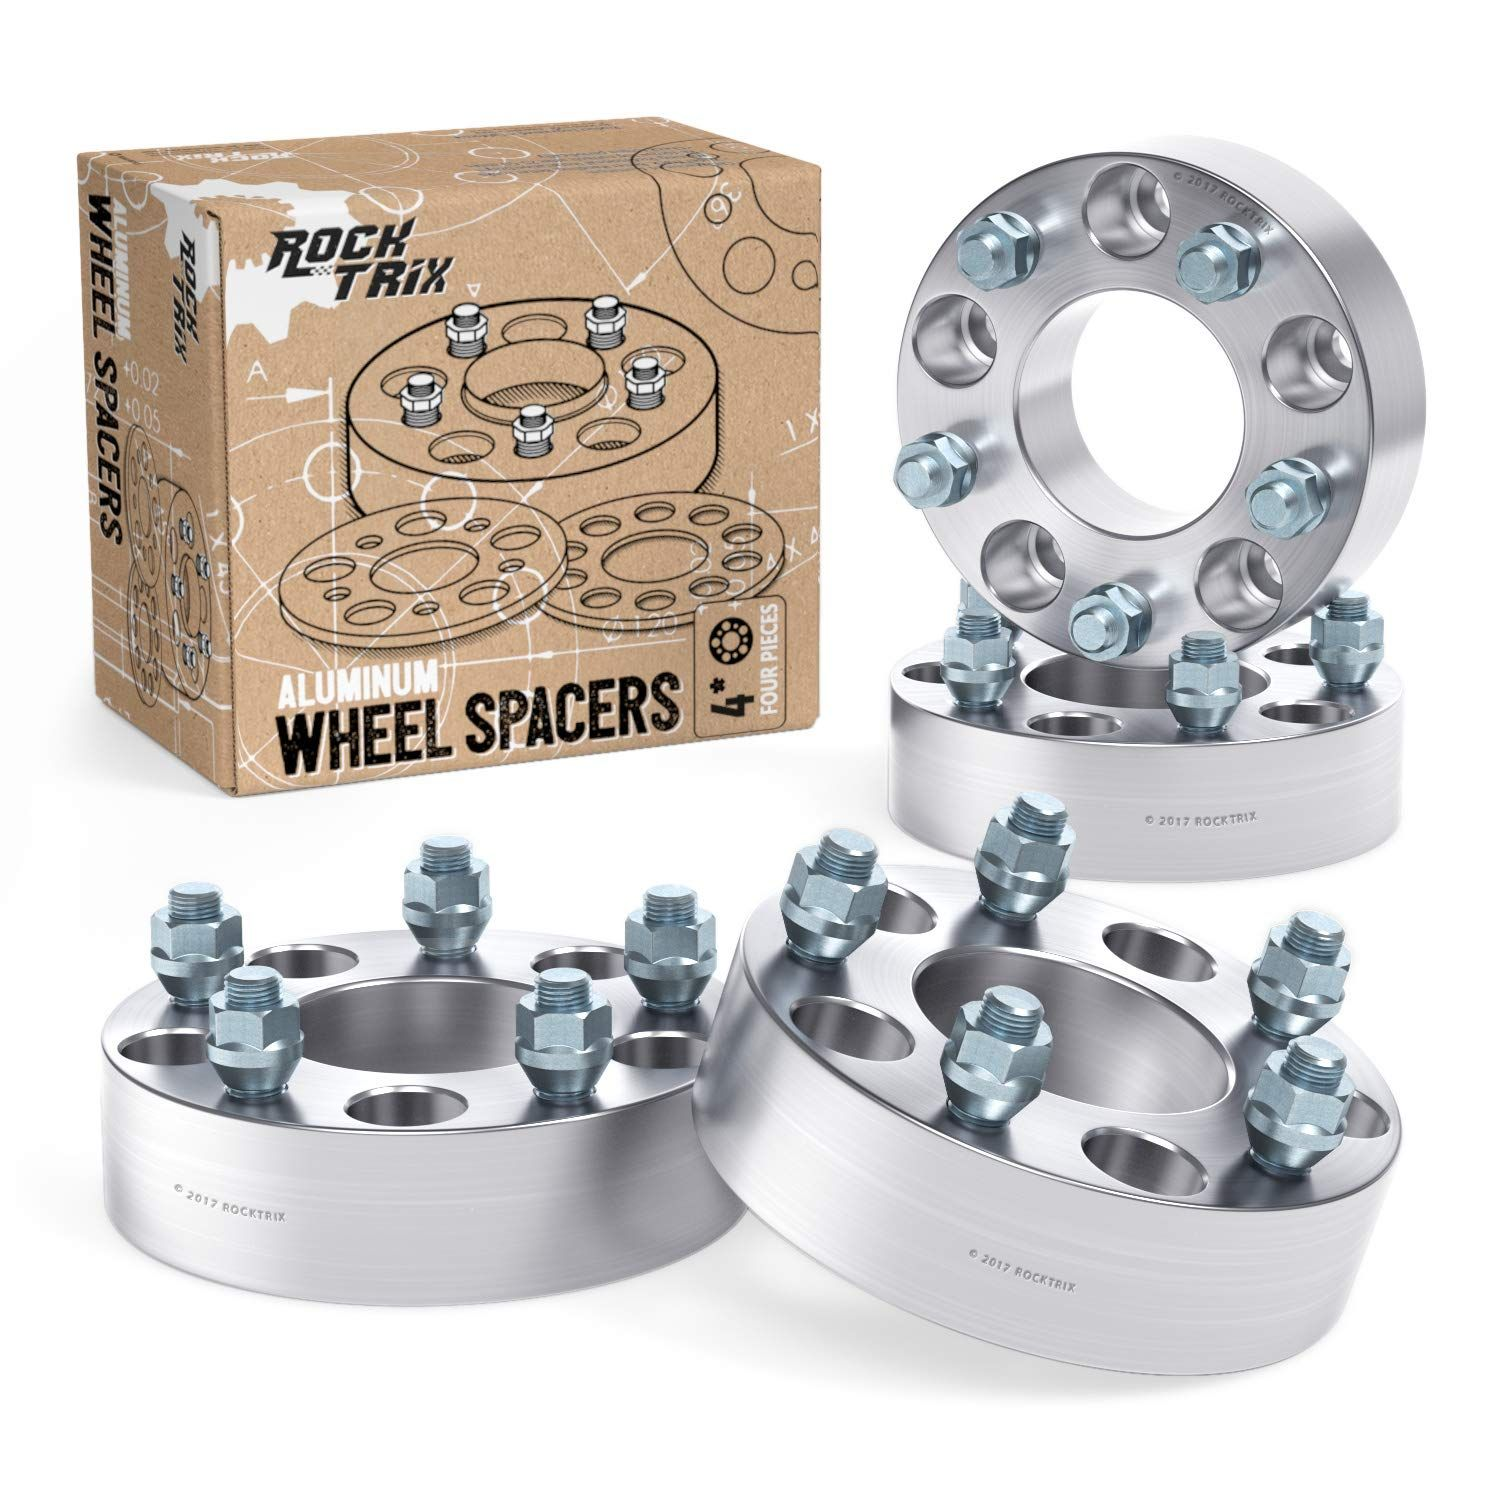 4pc Wheel Spacers 2 Thick 5x5 5 To 5x5 5 Bolt Pattern With 1 2 Studs For Dodge Ram 1500 Ford F100 F150 E100 E150 Br Bolt Pattern Ram 1500 Dodge Dakota